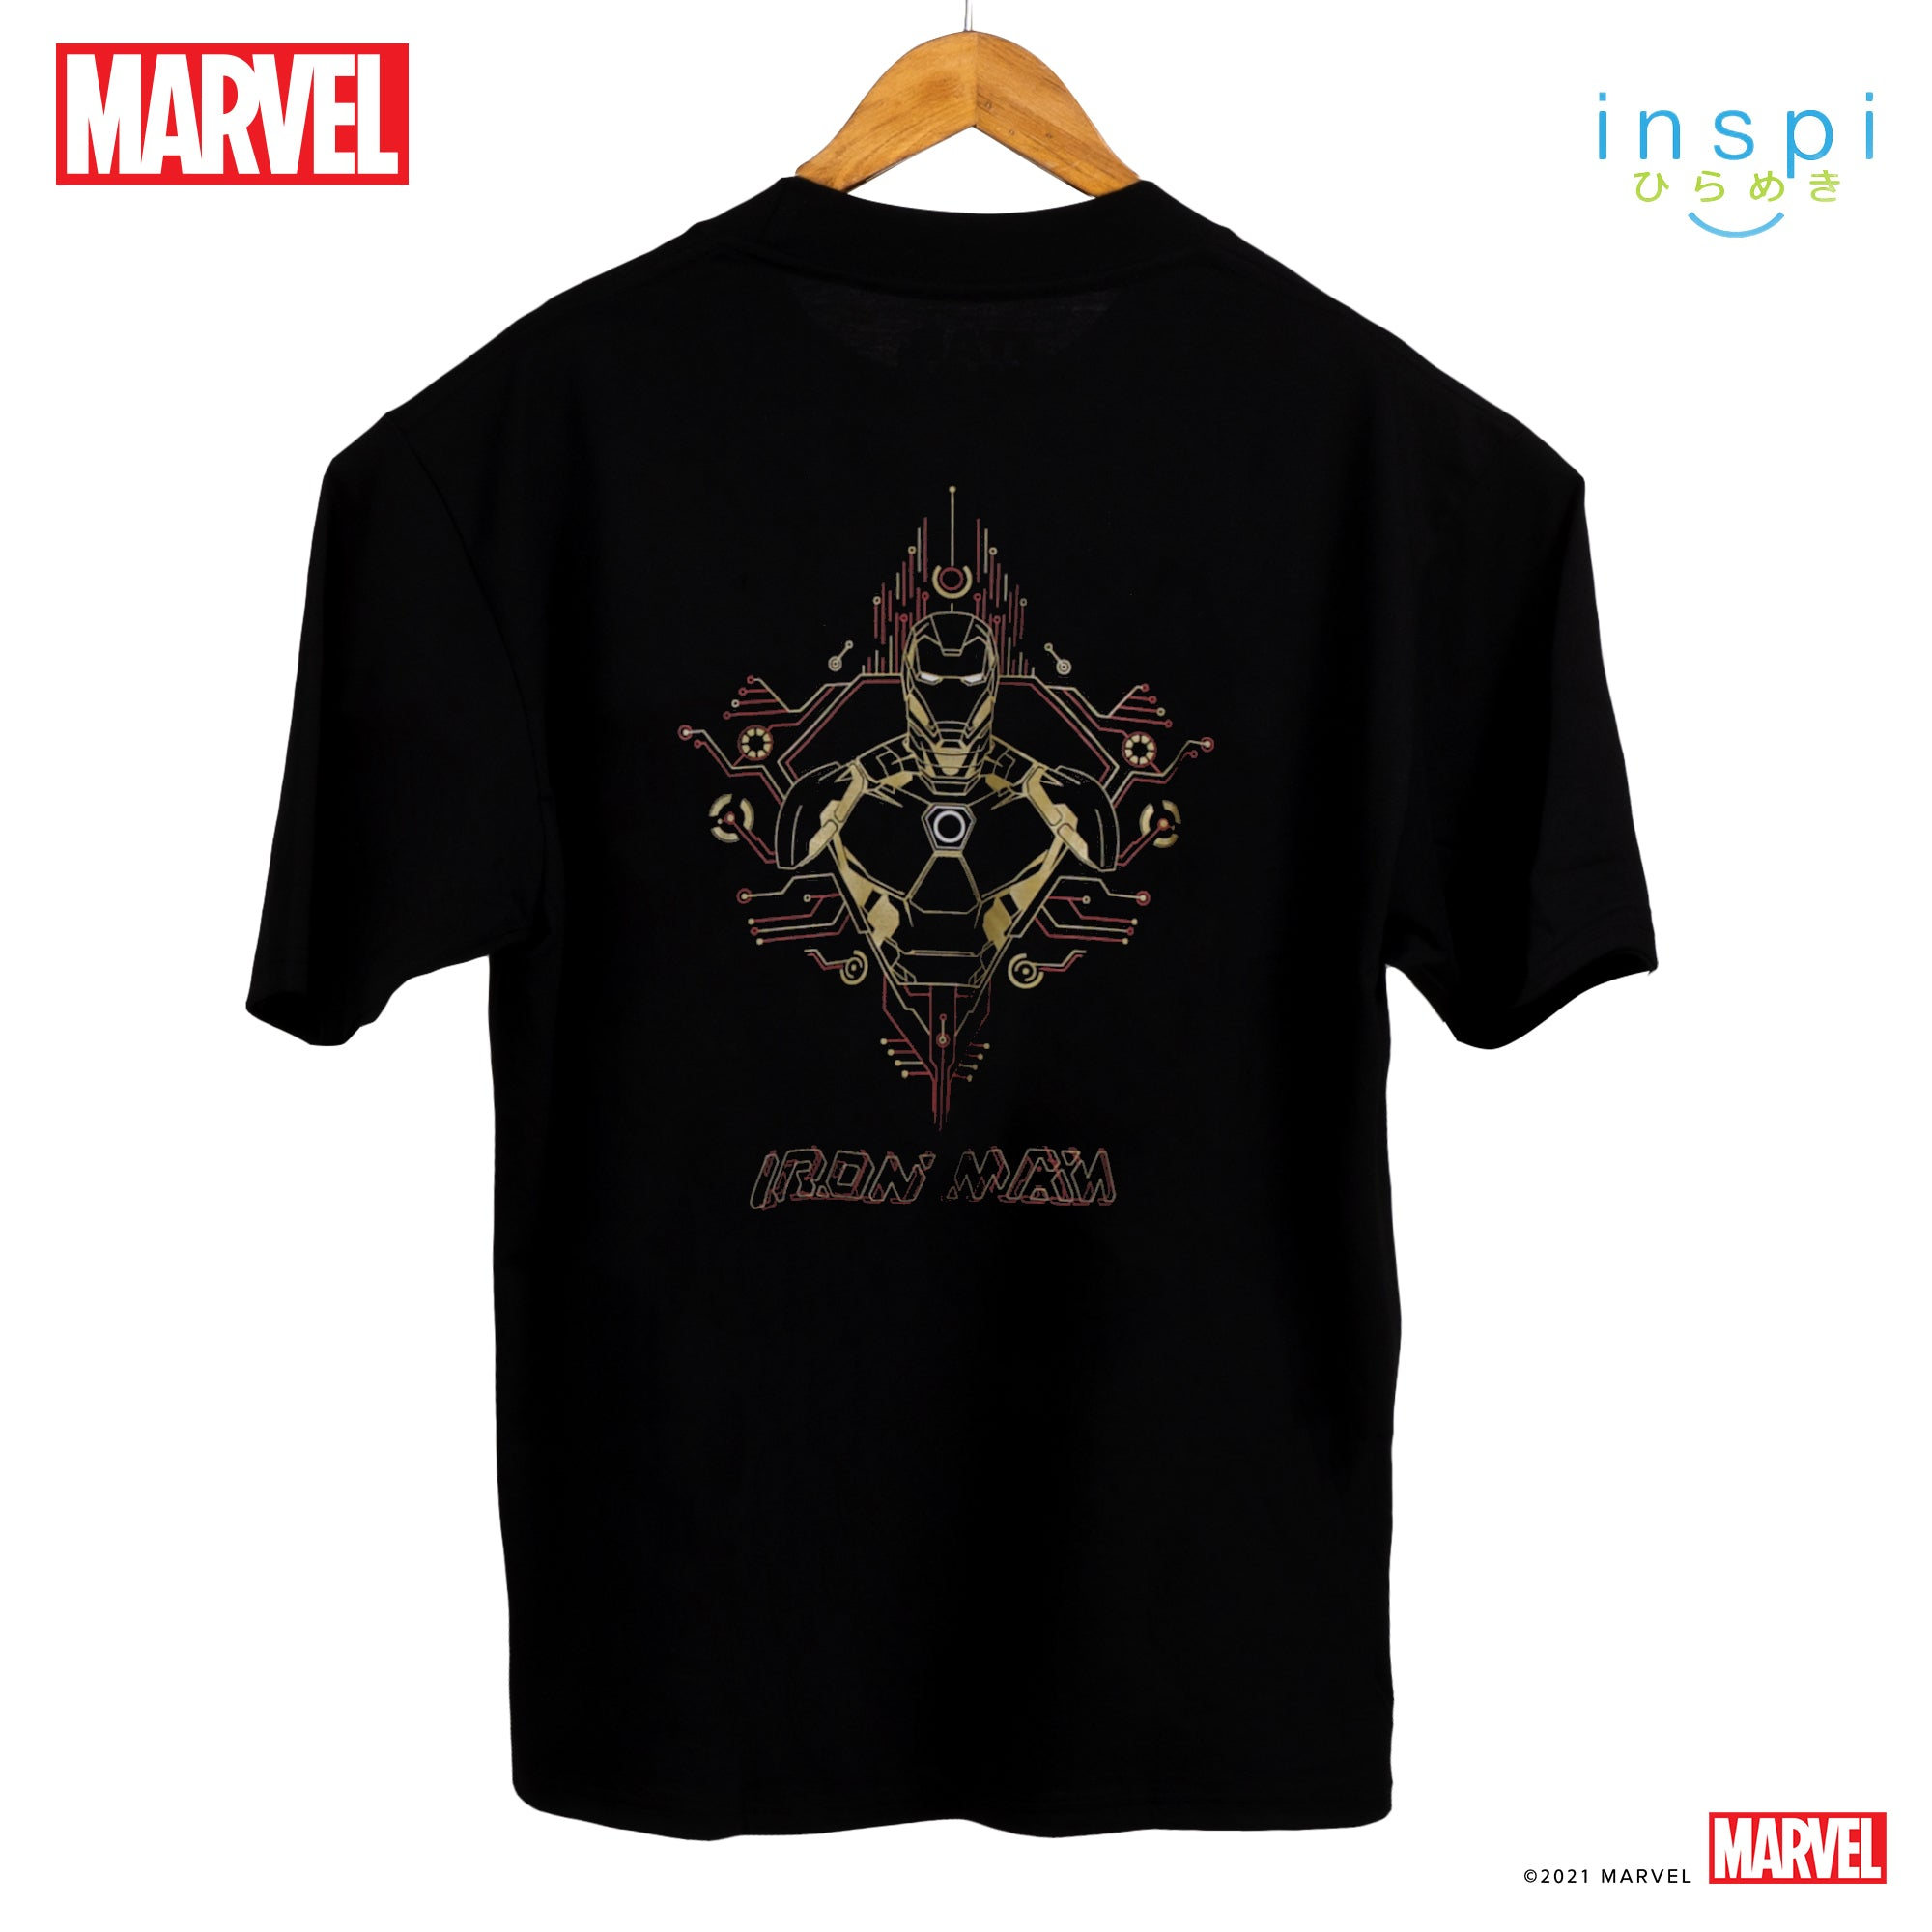 Marvel Loose Fit Iron Man Tech Geometry Graphic Korean Oversized Tshirt in Black Inspi Tee